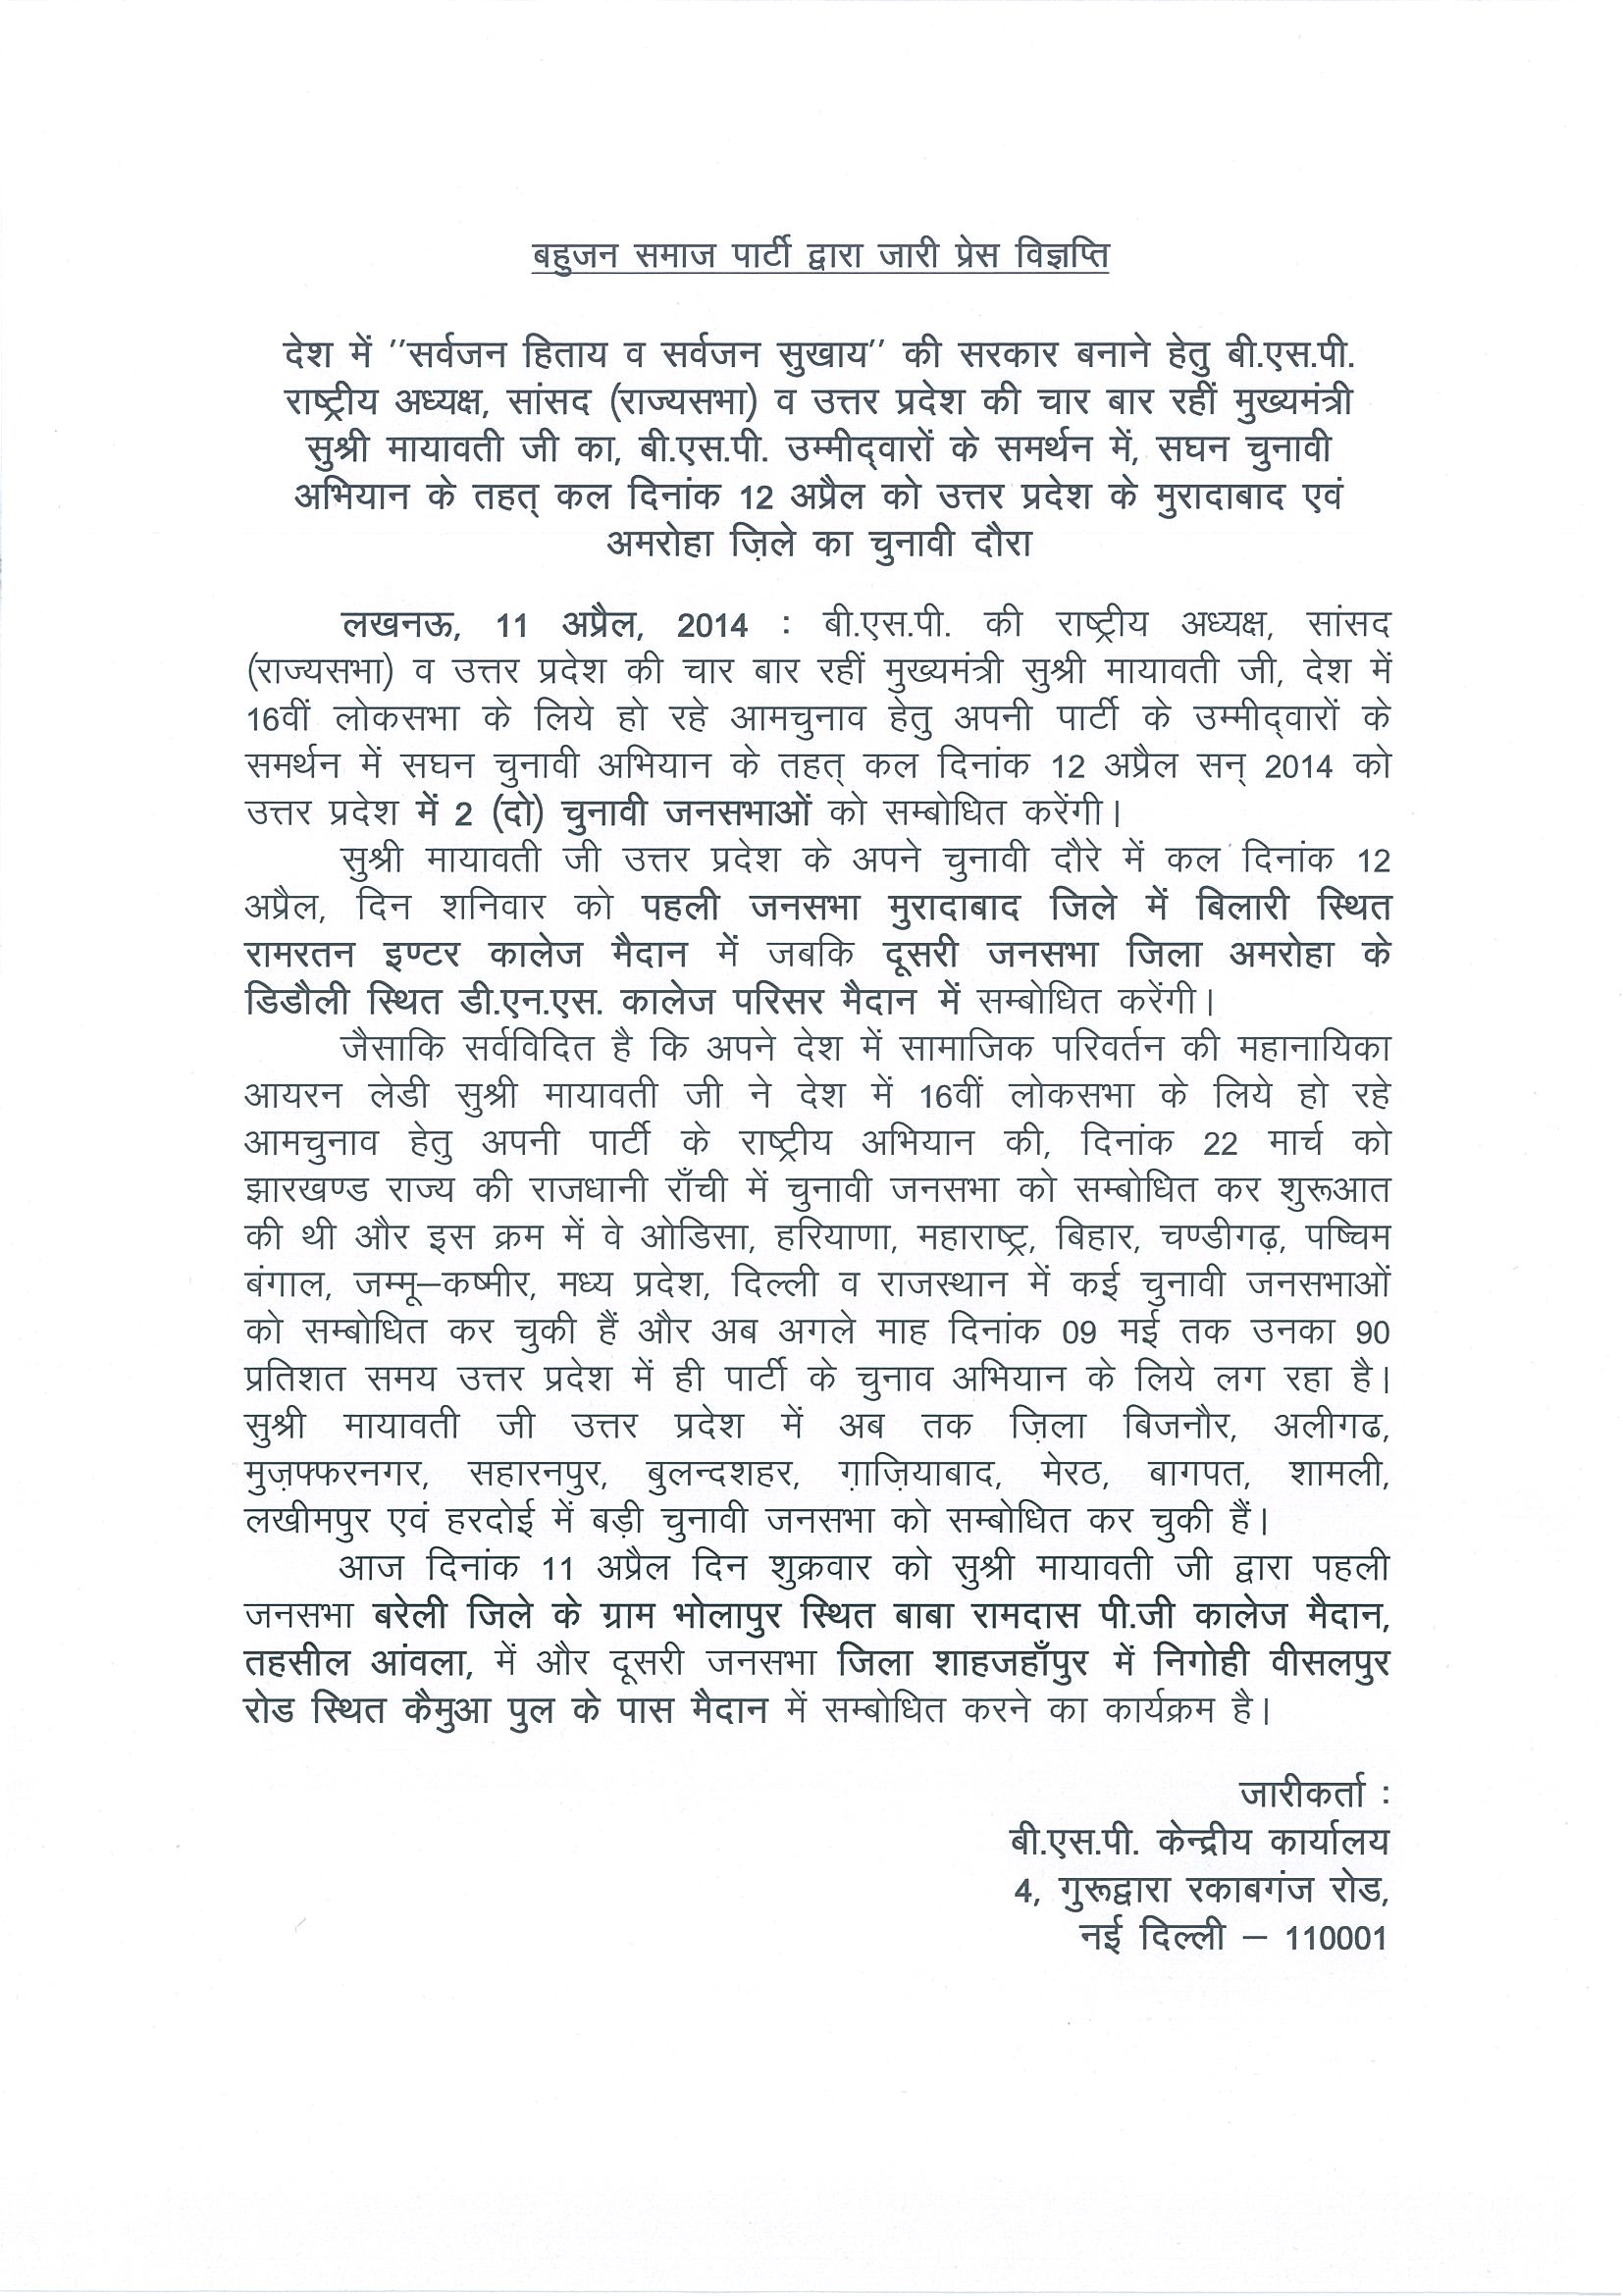 013 Essay On Earthquake Example Bsp Press Note Up New Impressive Occurred In India During 2011-12 English Hindi Full